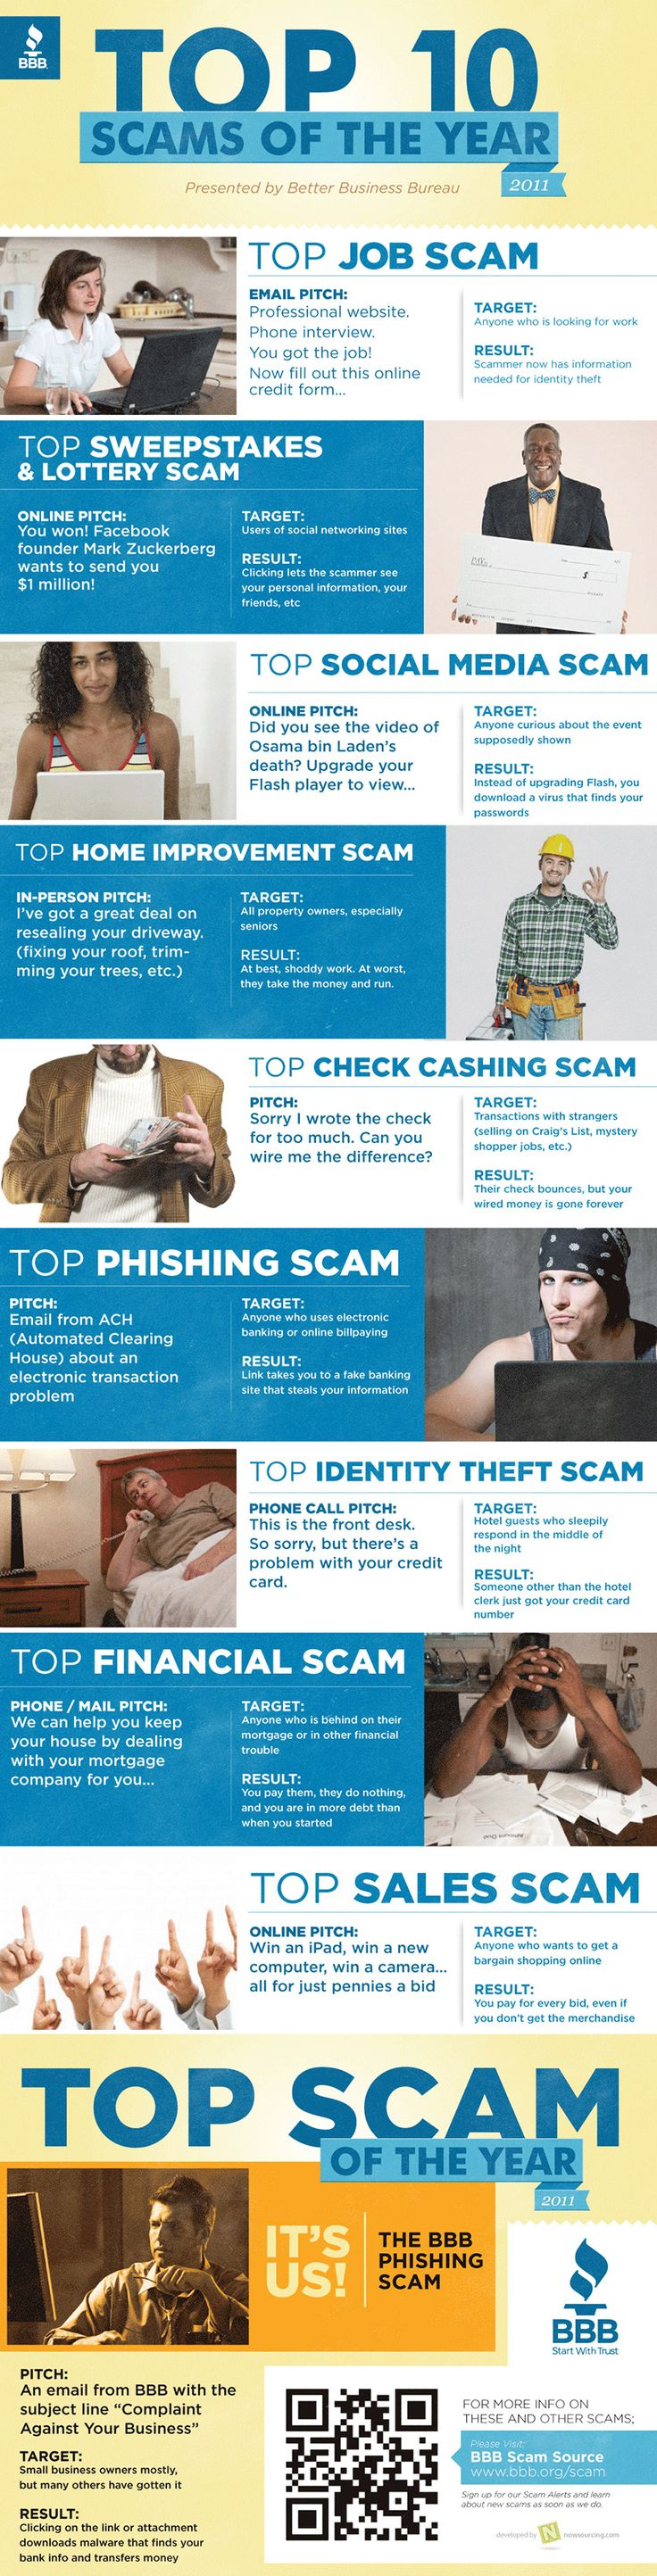 Top TEN Online Scams of the Year